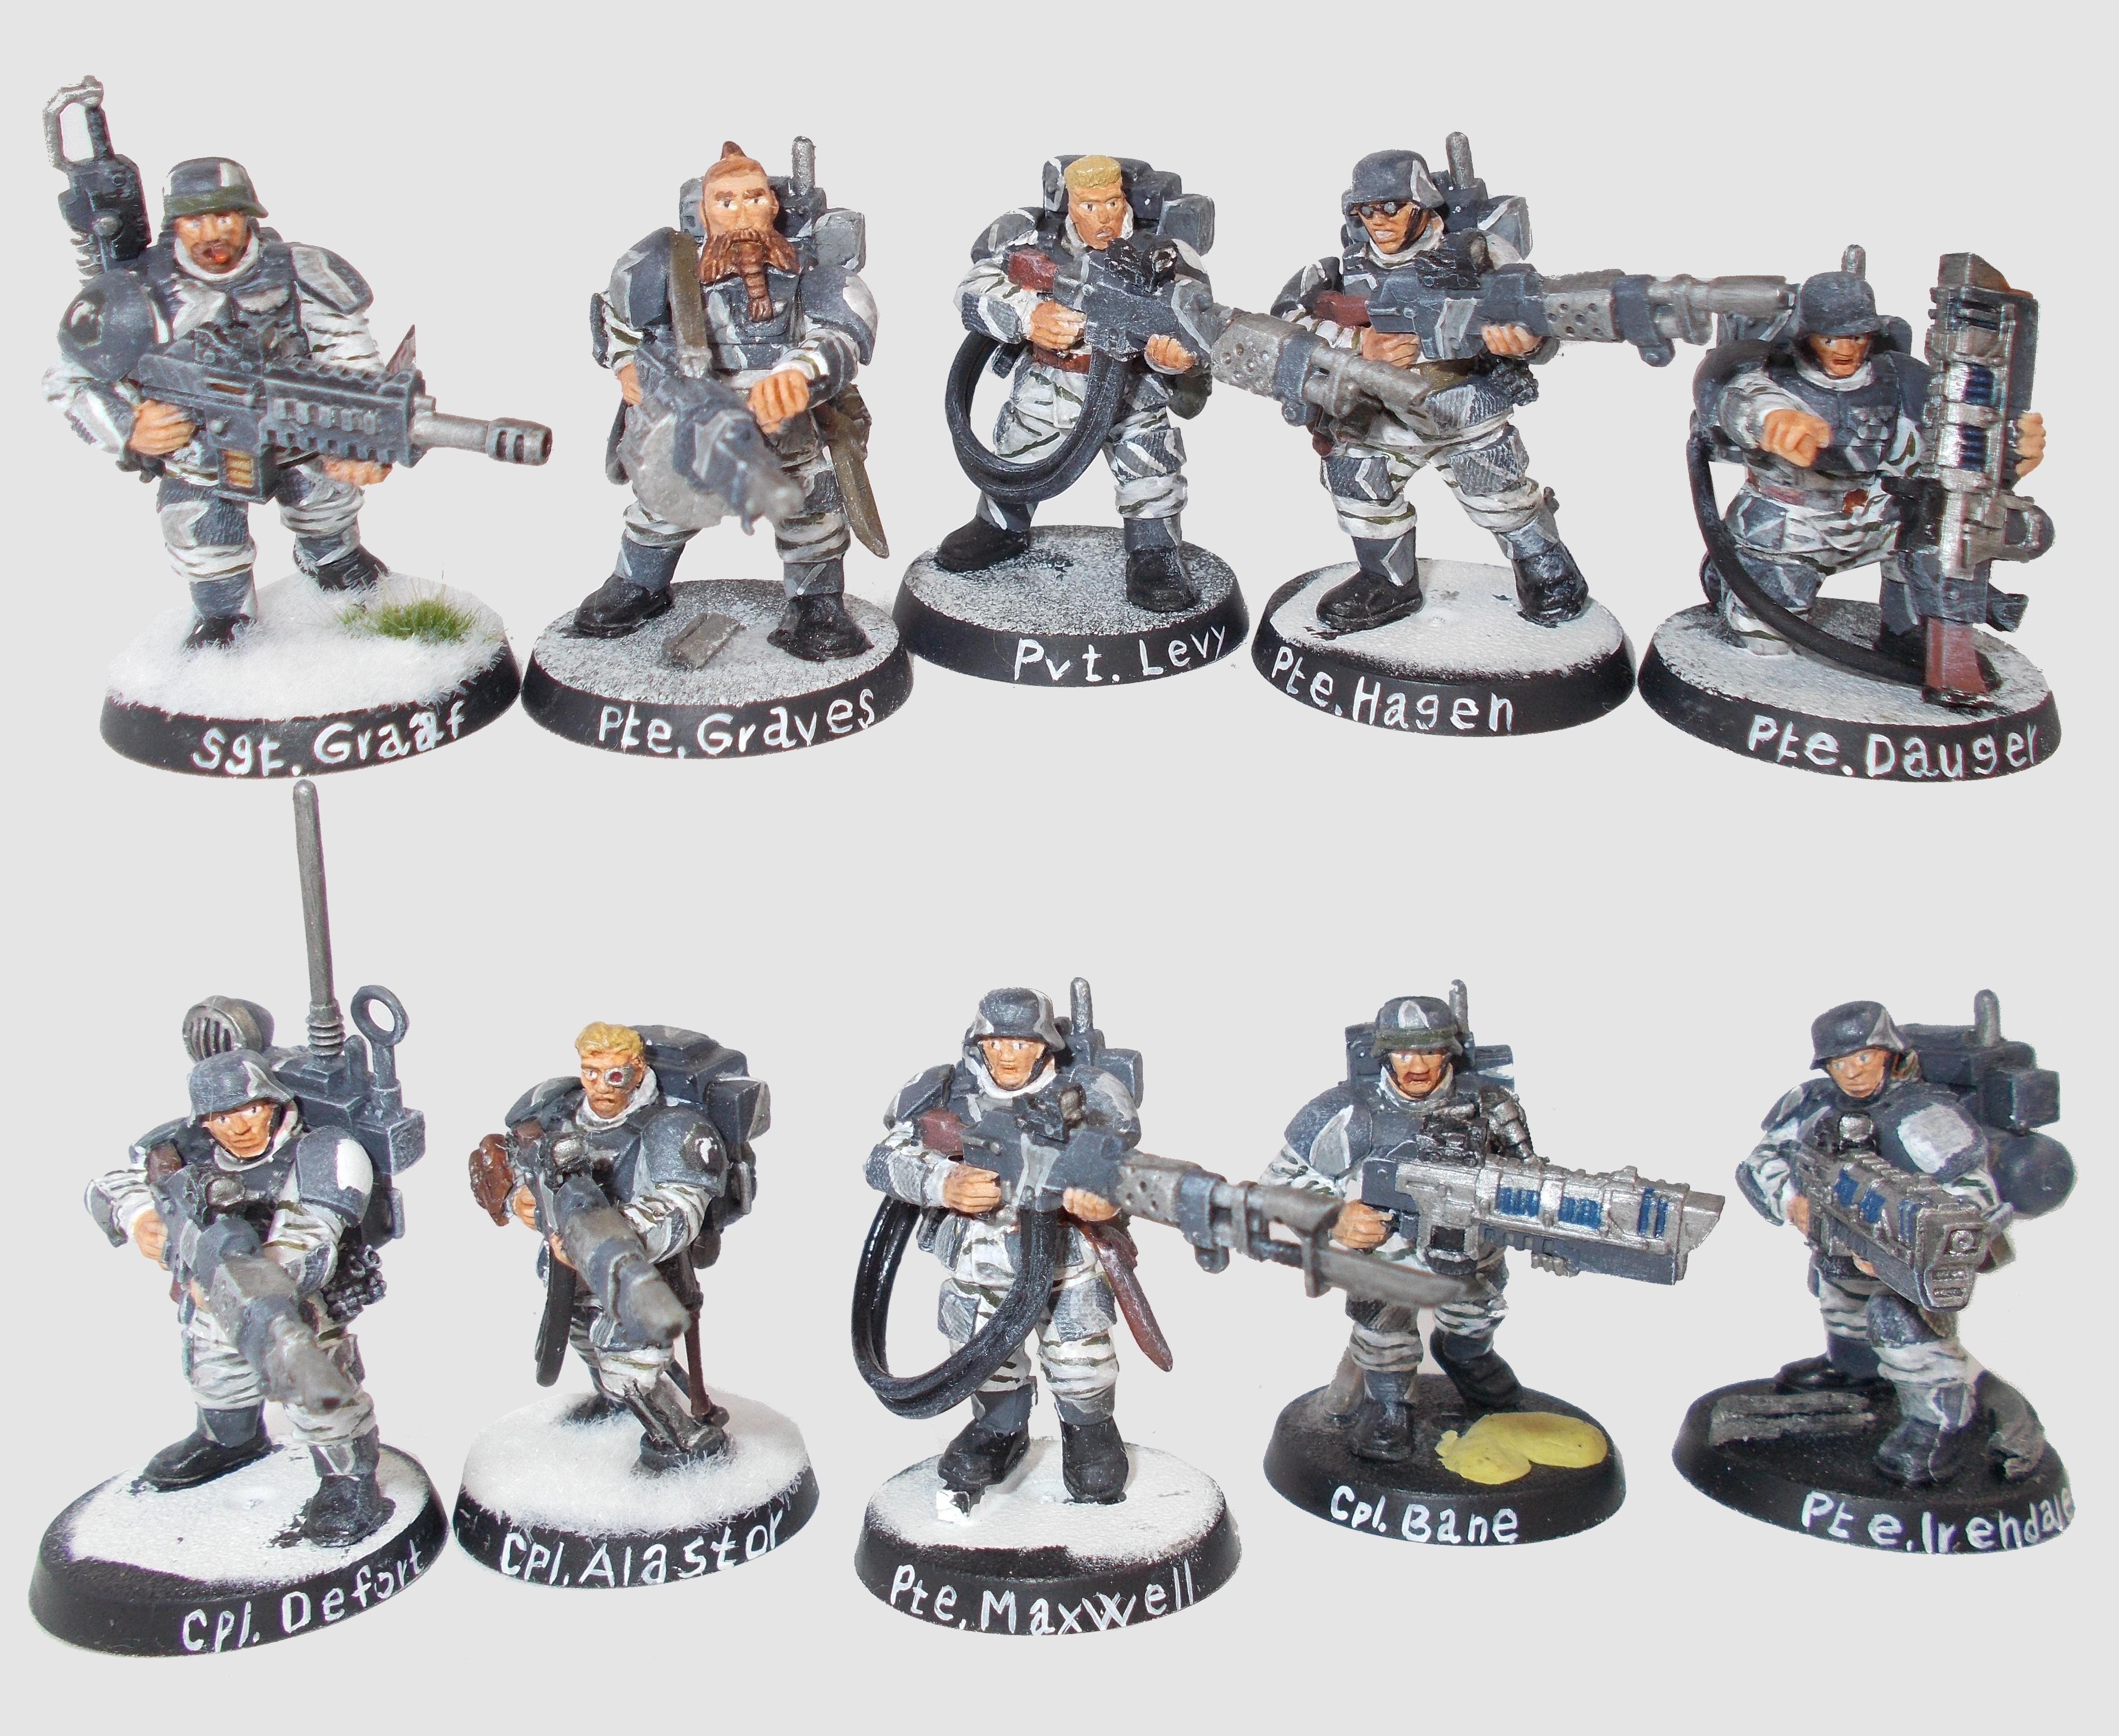 Imperial Guard, 2nd Grenadier squad